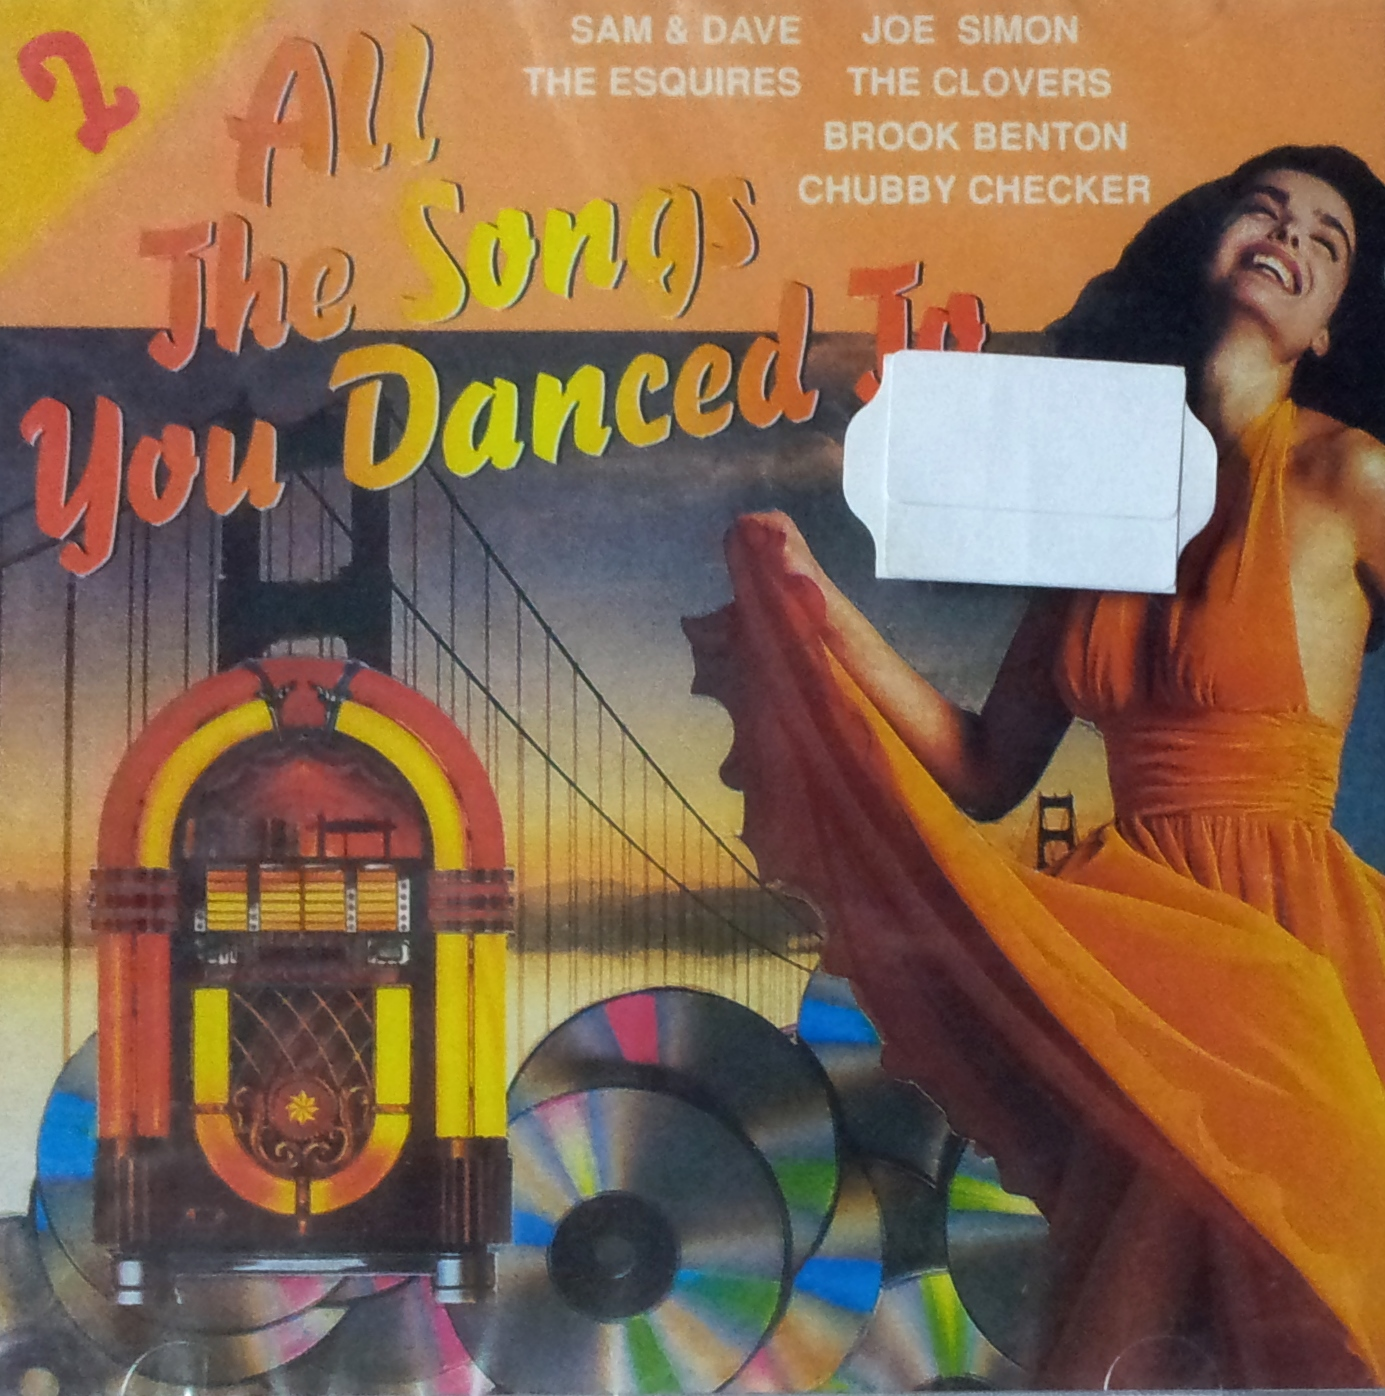 All the songs you danced to Vol. 2